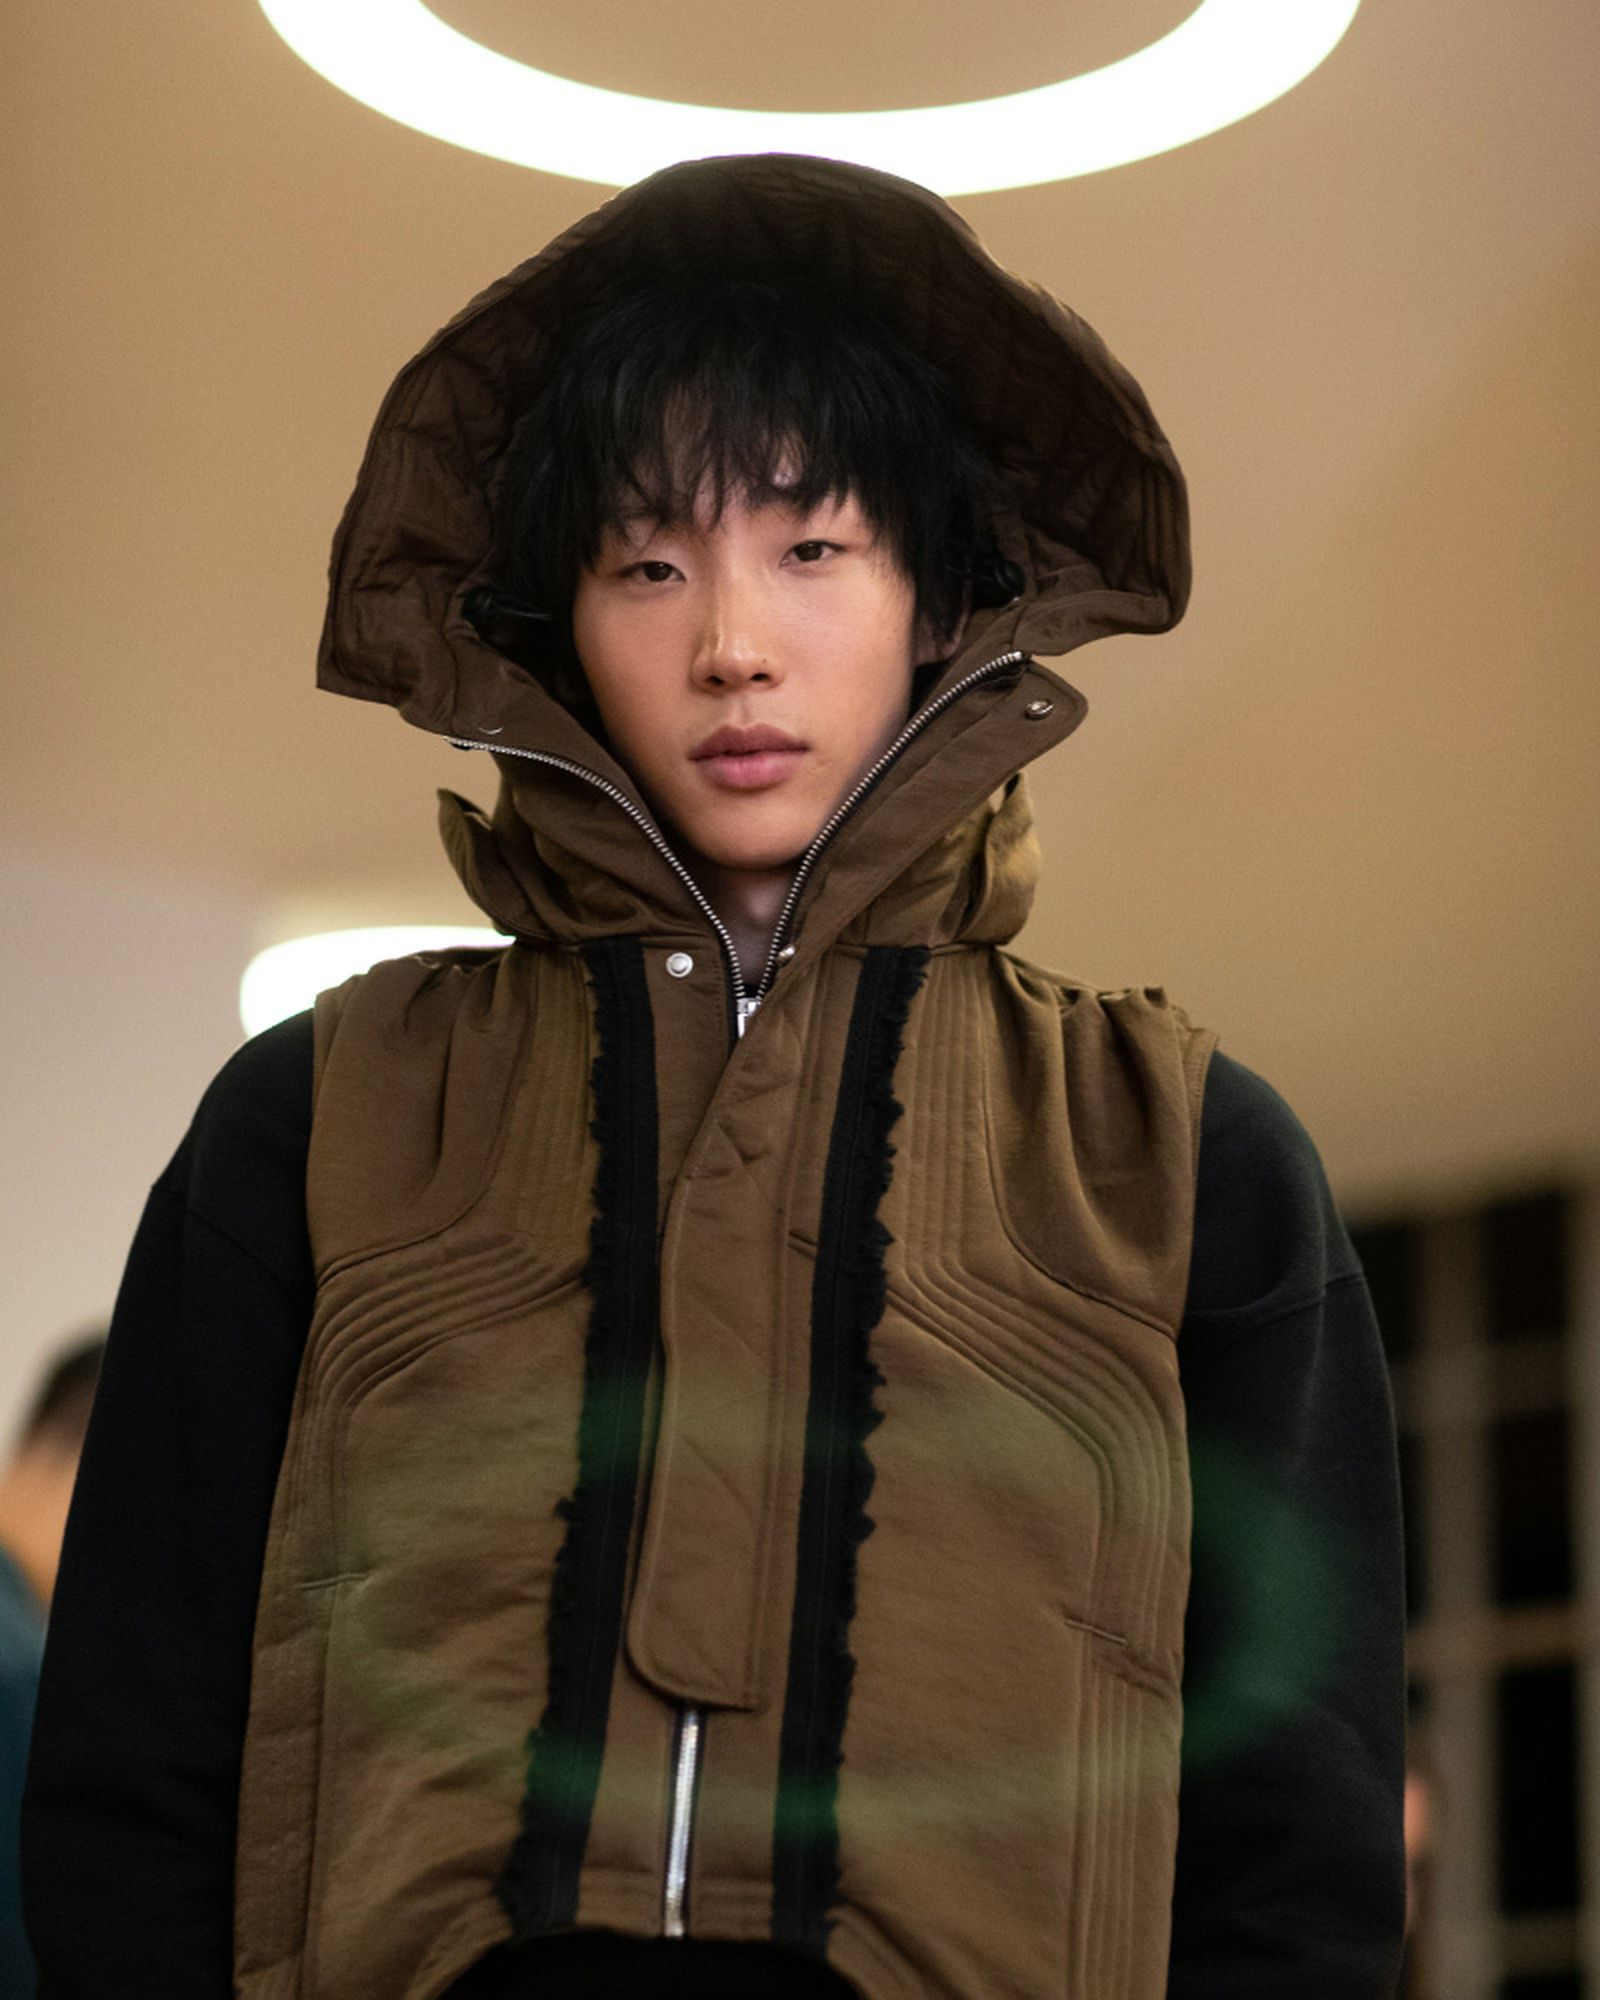 a-cold-wall-fw20-looks-nothing-like-a-cold-wall-shopping-01